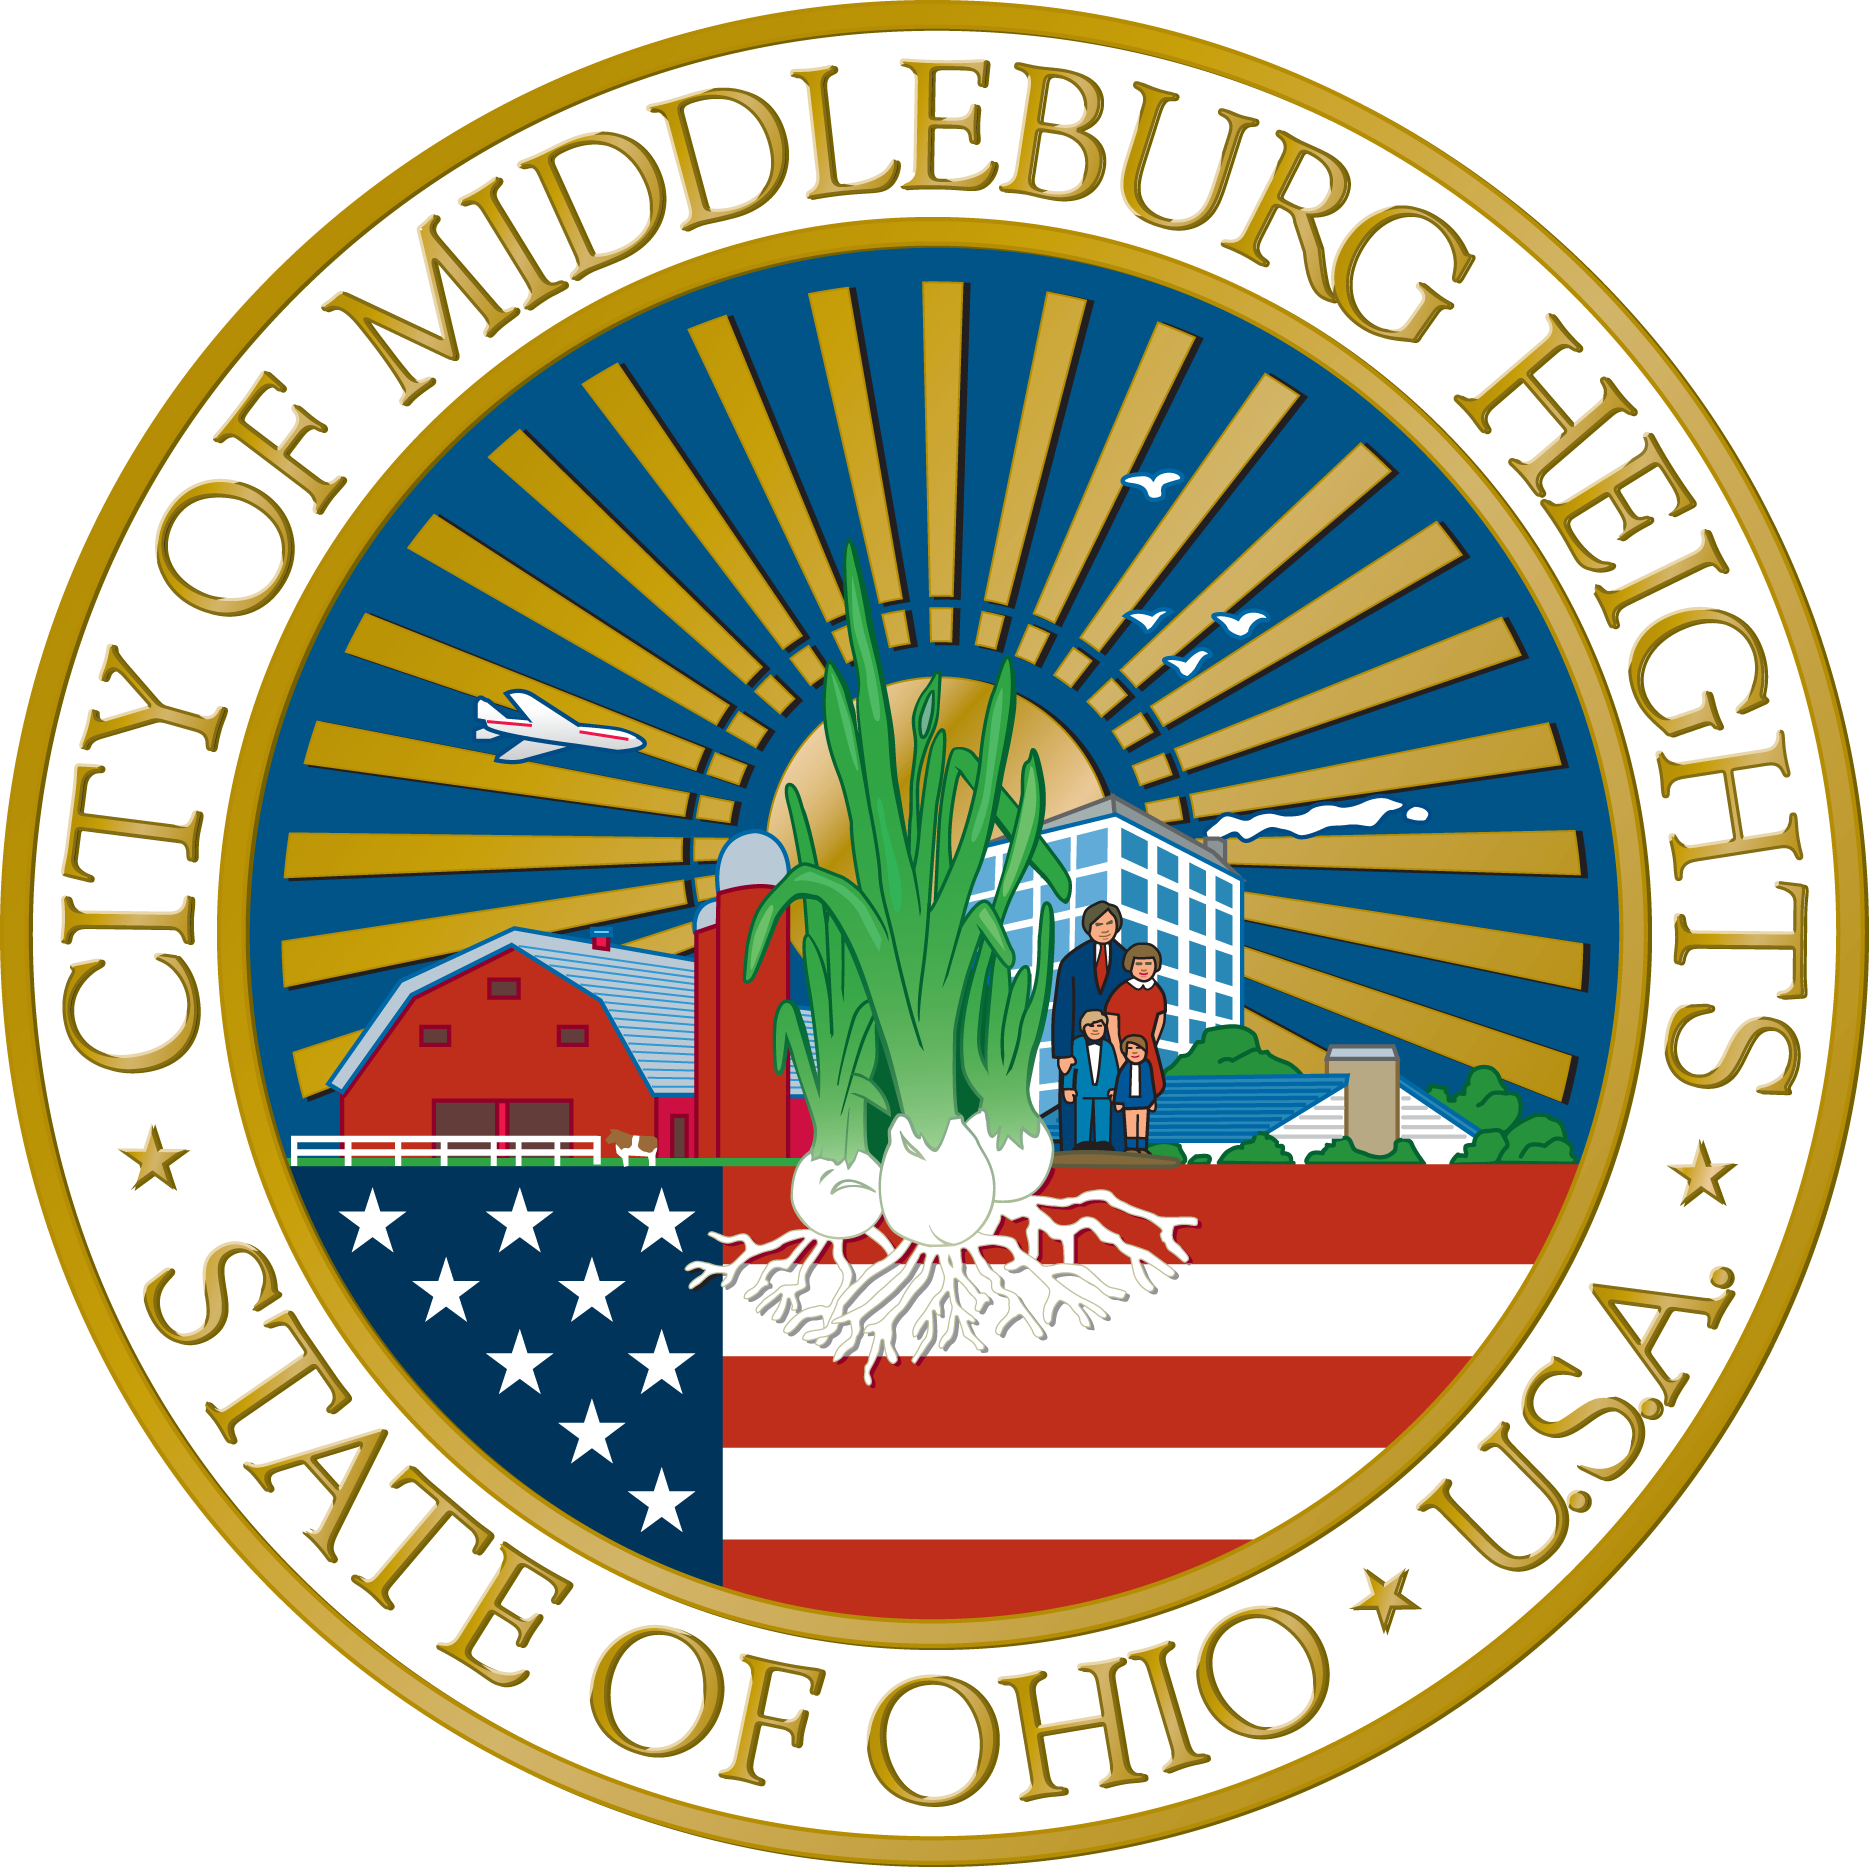 City of Middleburg Heights Ohio State seal